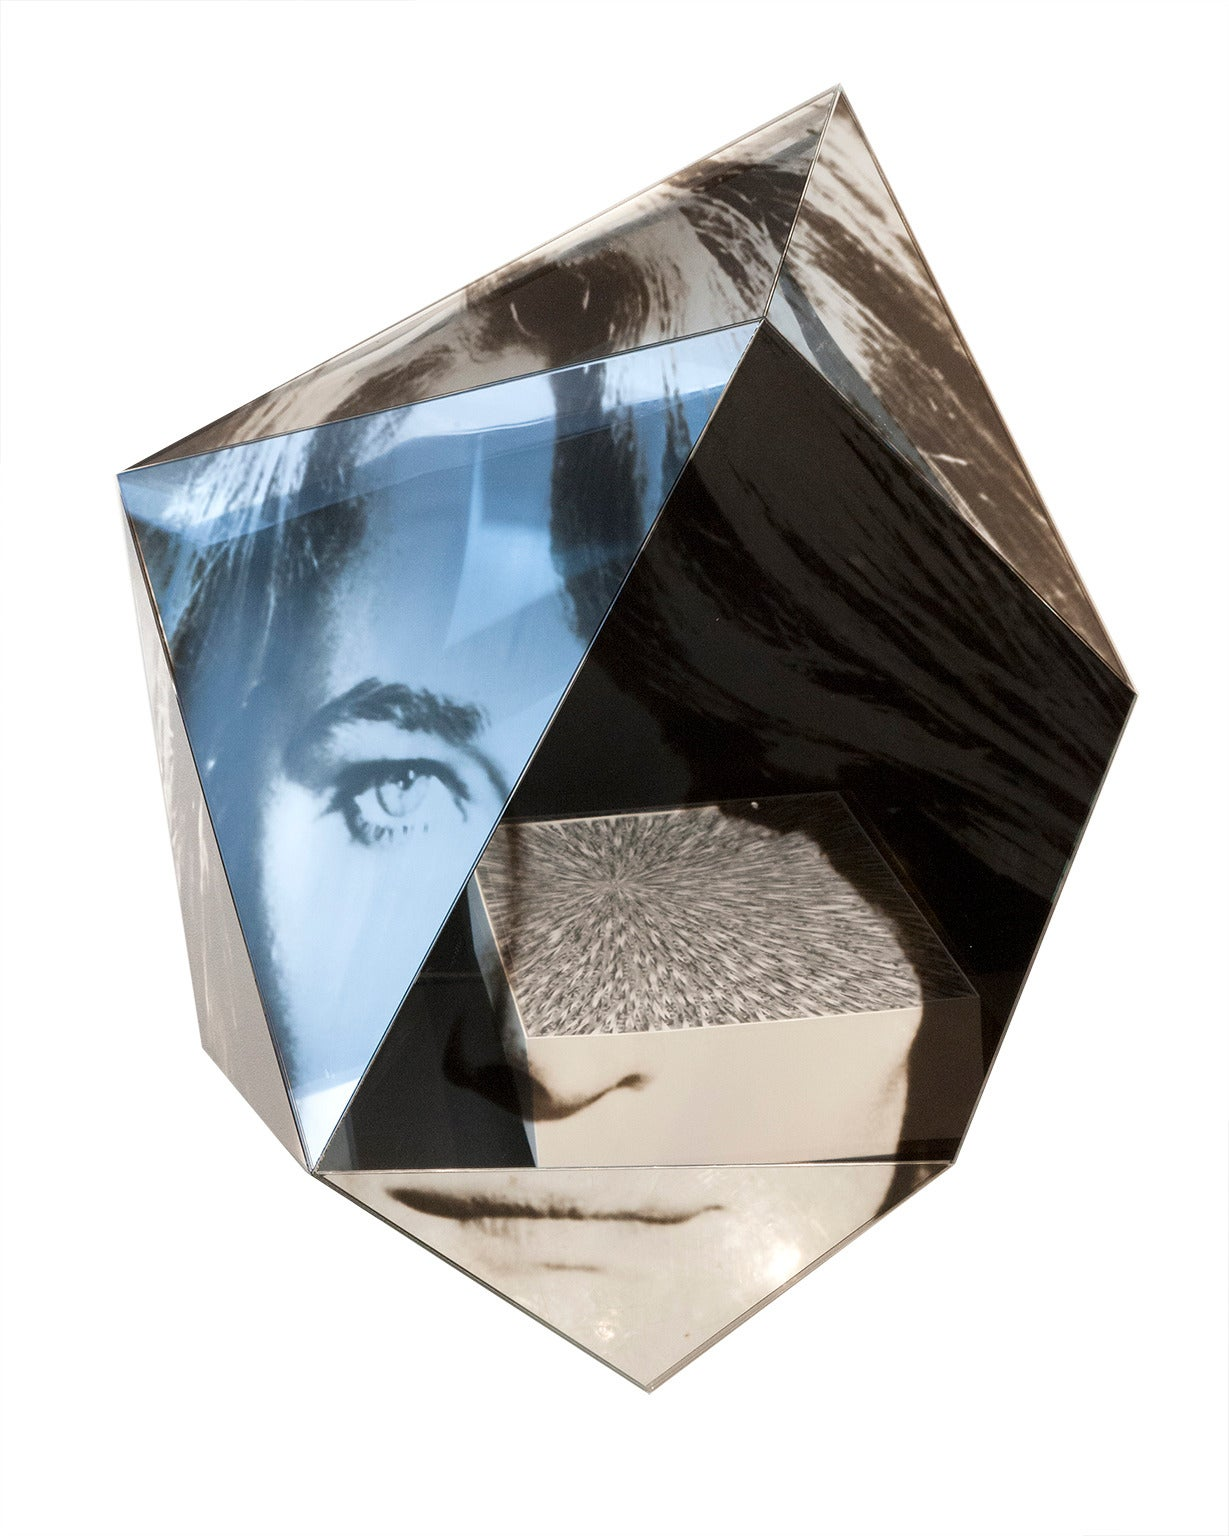 Custom faceted wall mirror with digitally printed image on laminated mirror. Limited edition of 10  Measure: 55